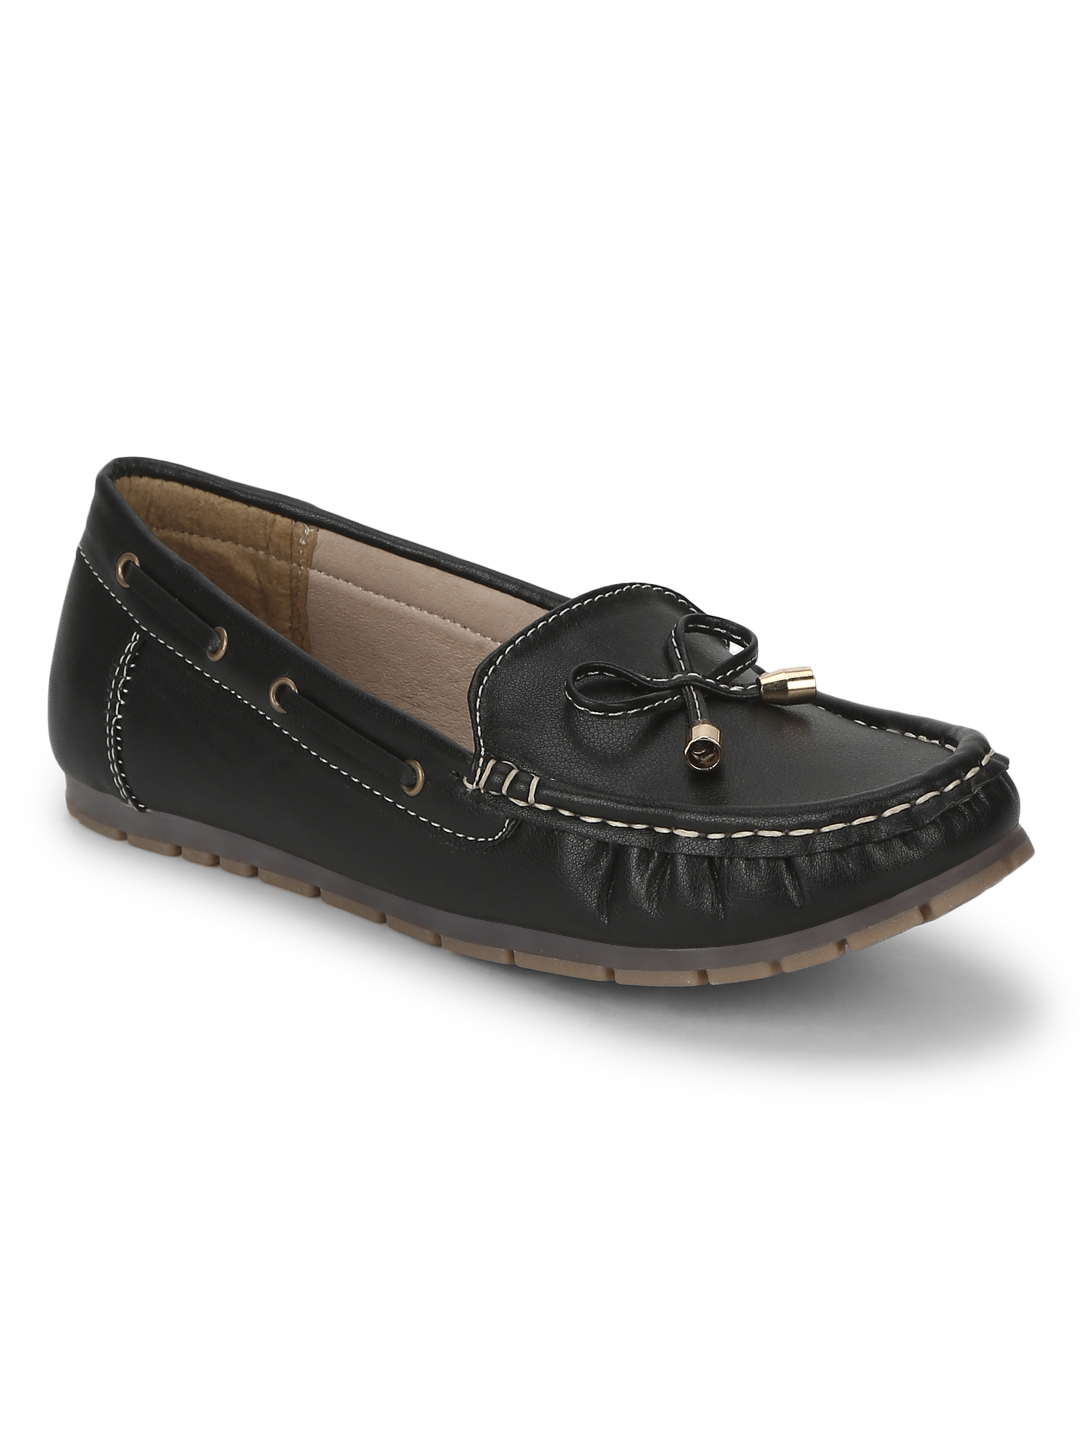 Truffle Collection   Black PU Loafers With Bow